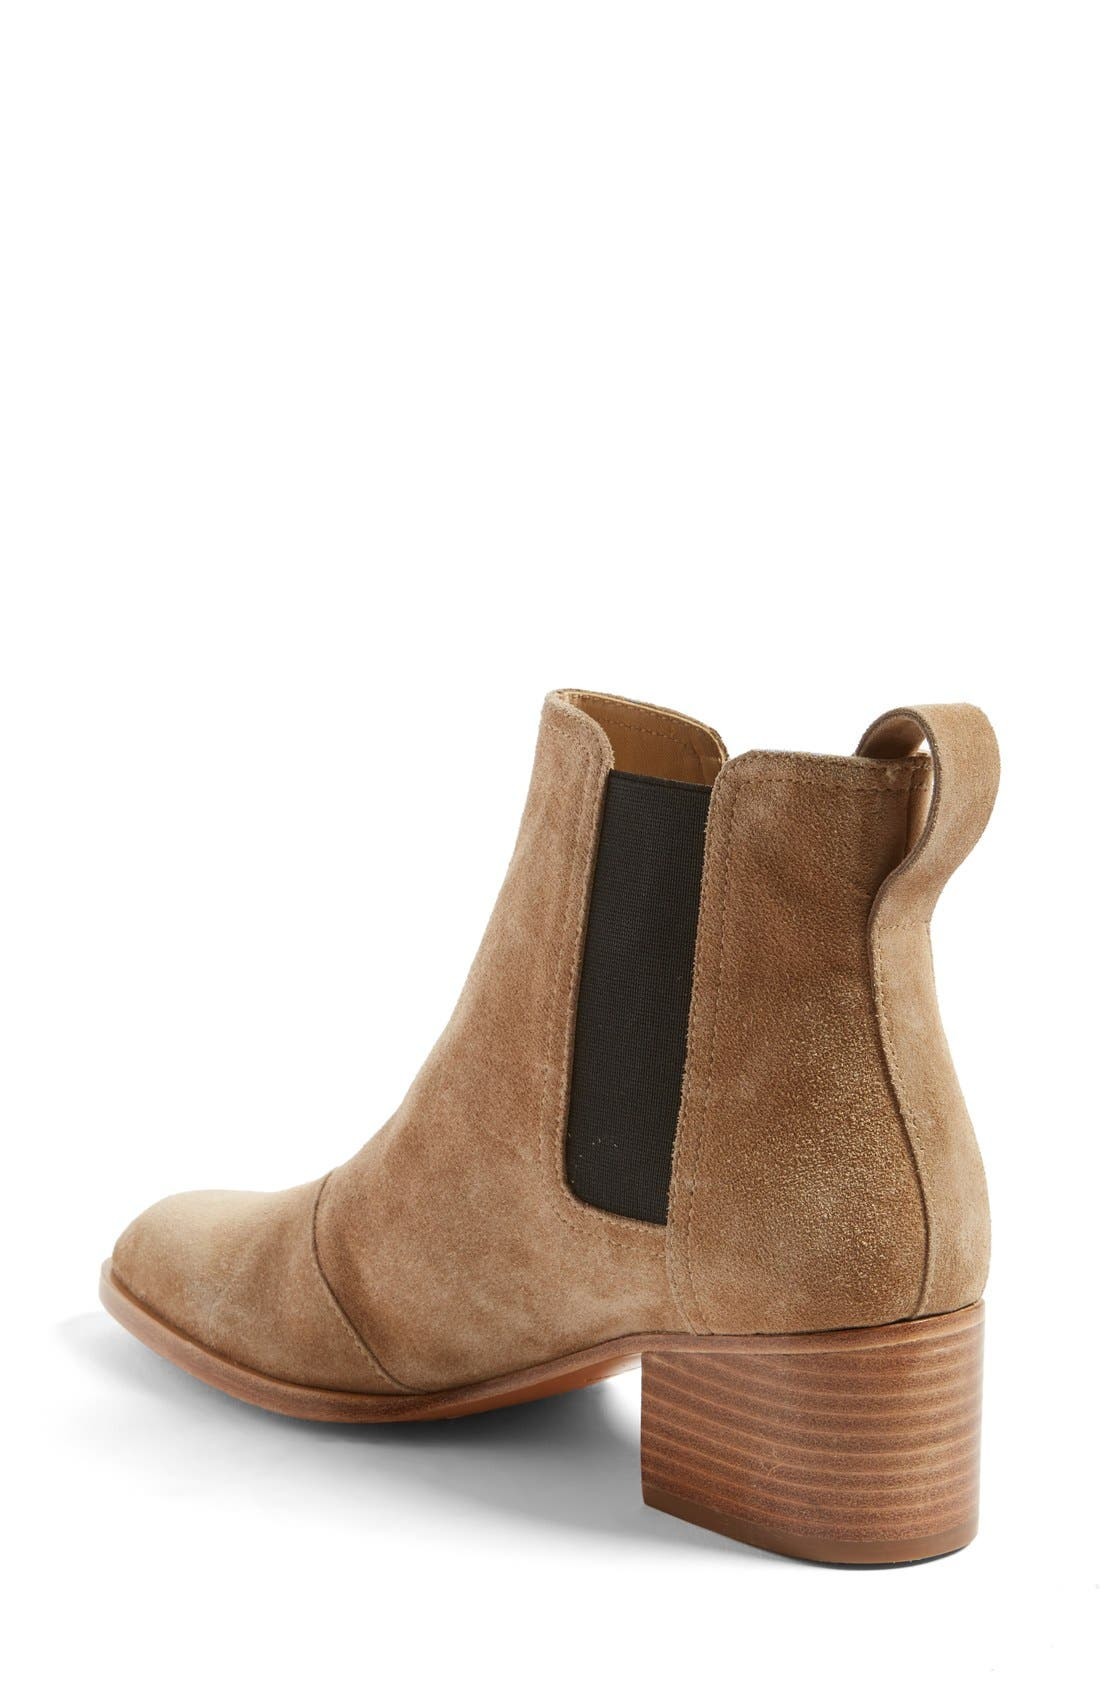 'Walker' Bootie,                             Alternate thumbnail 5, color,                             CAMEL SUEDE